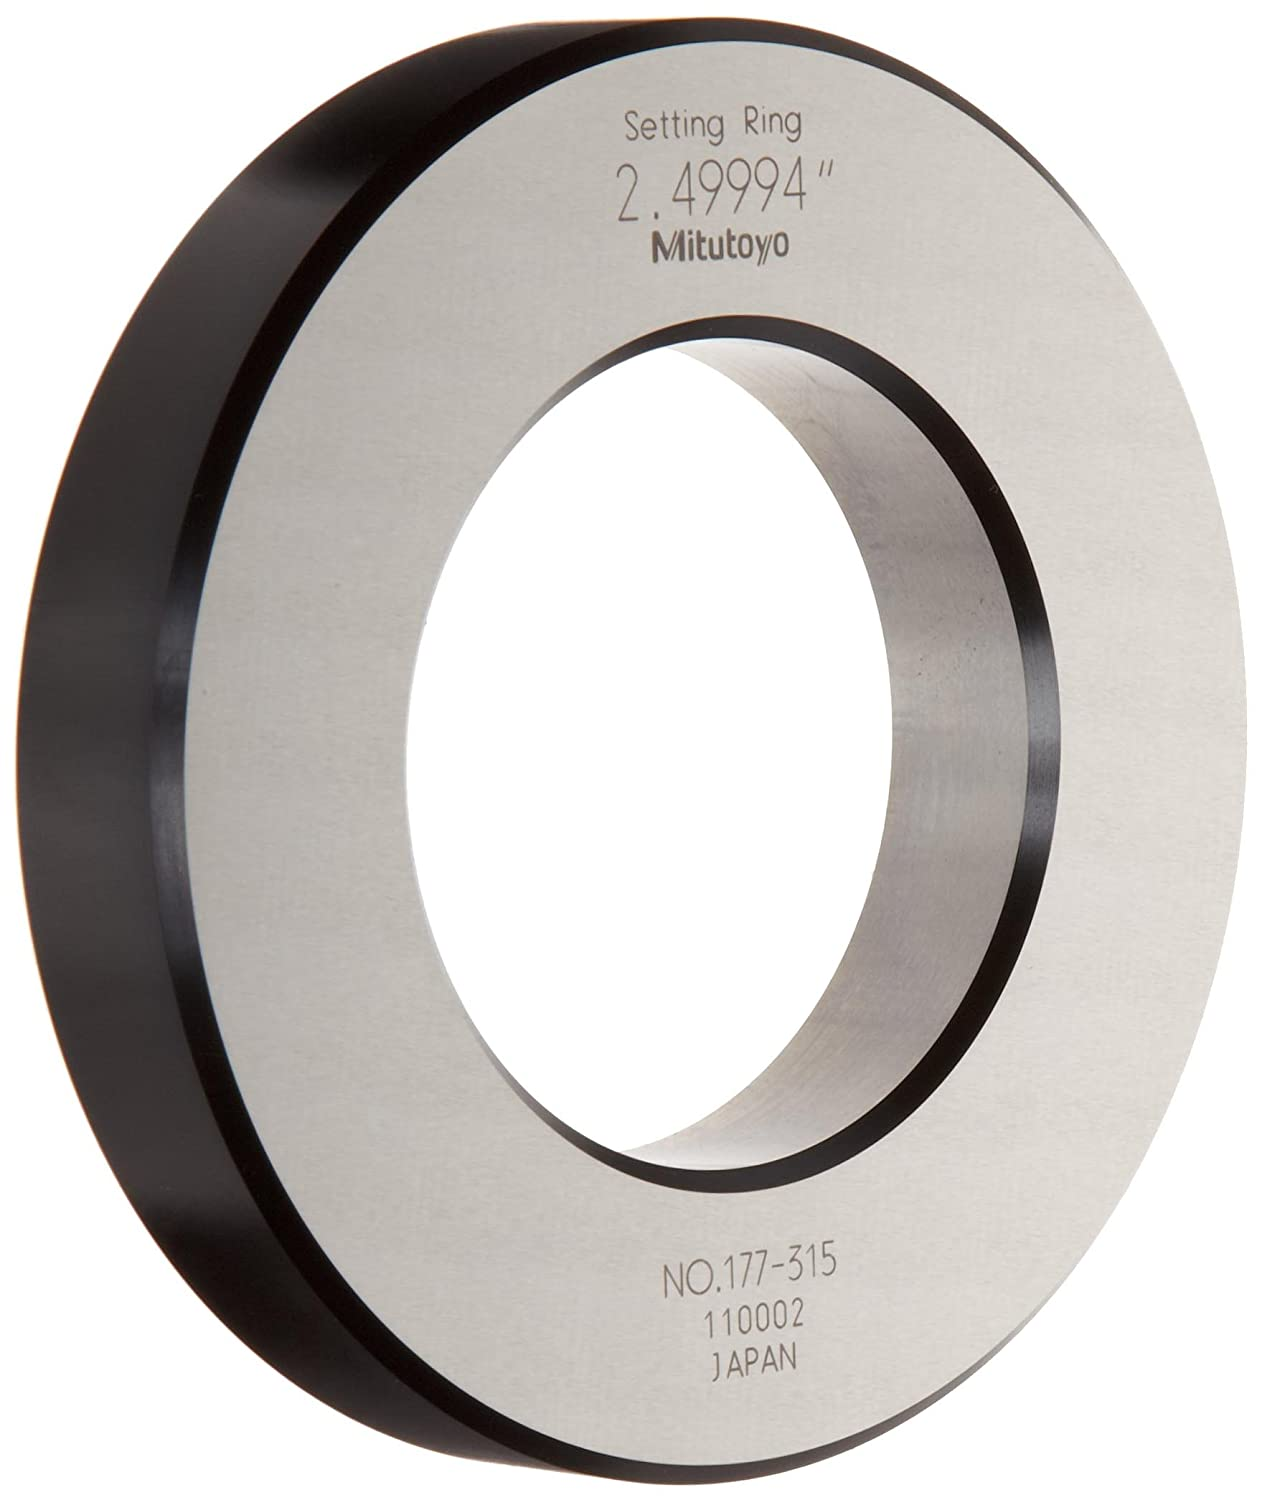 Mitutoyo 177-315 Setting Ring, 2.5' Size, 0.79' Width, 4.41' Outside Diameter, +/-0.00006' Accuracy 2.5 Size 0.79 Width 4.41 Outside Diameter +/-0.00006 Accuracy